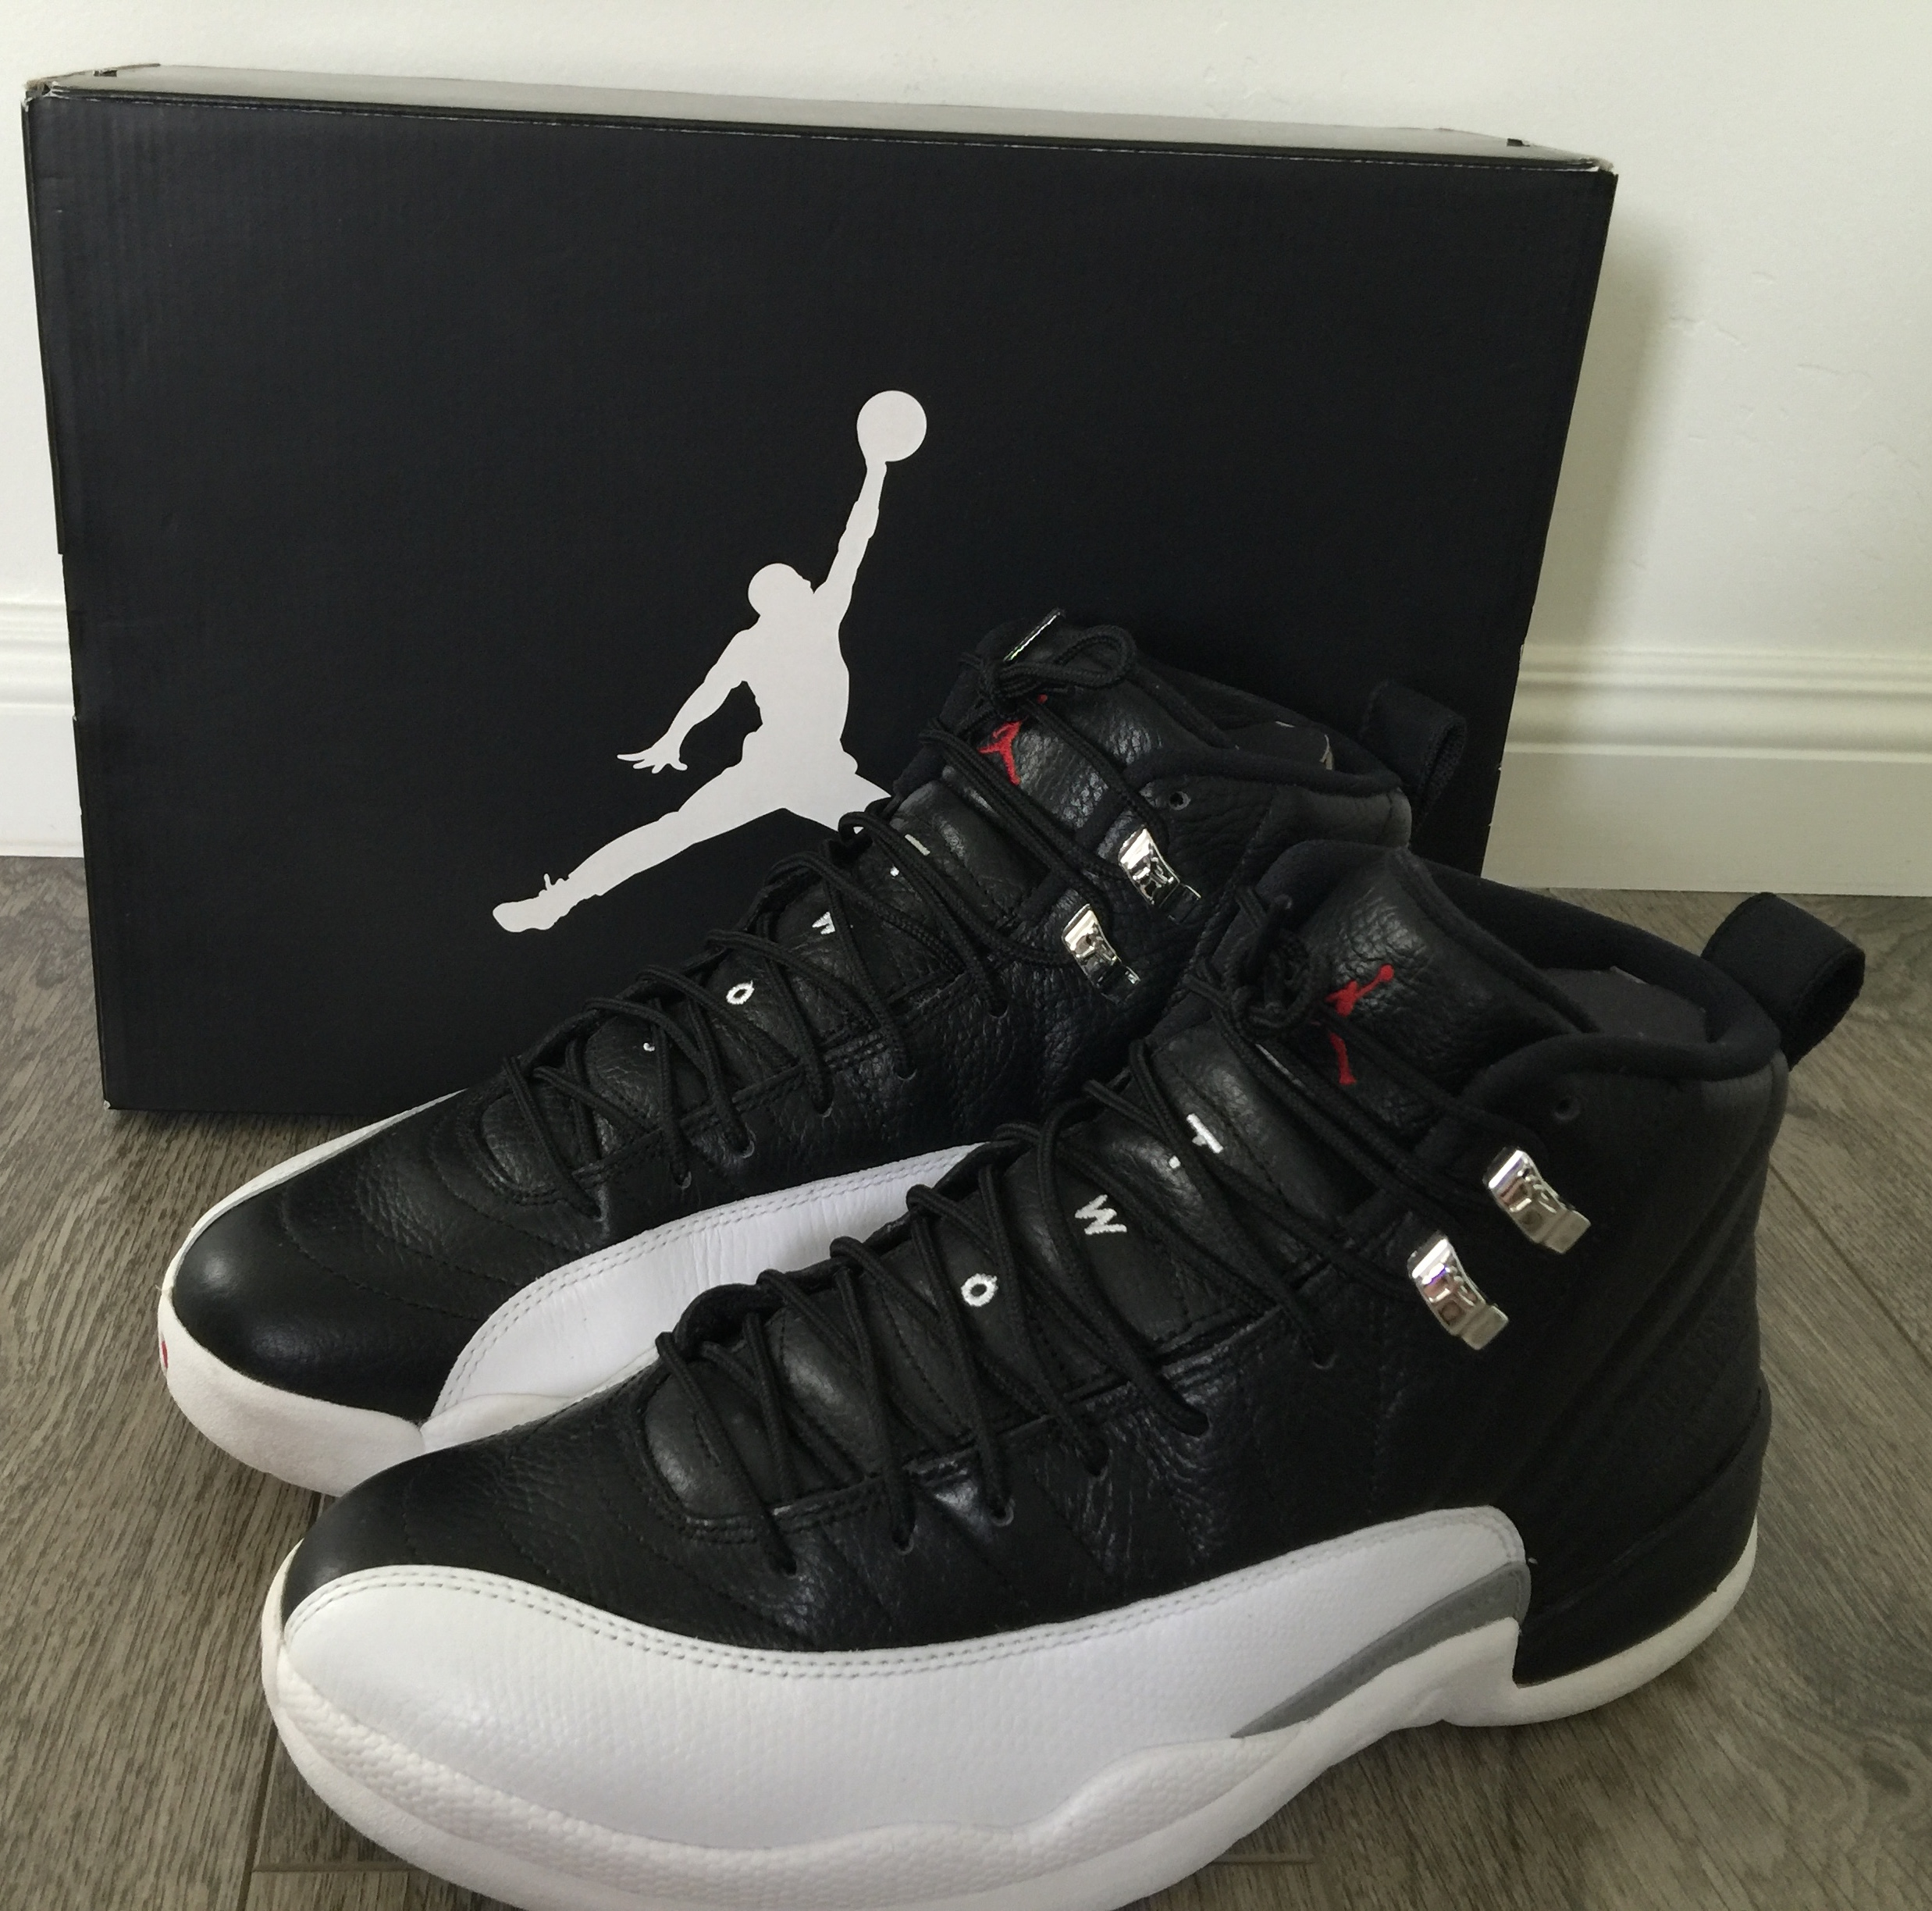 cheaper 12a8d 73e4a Air Jordan Retro XII